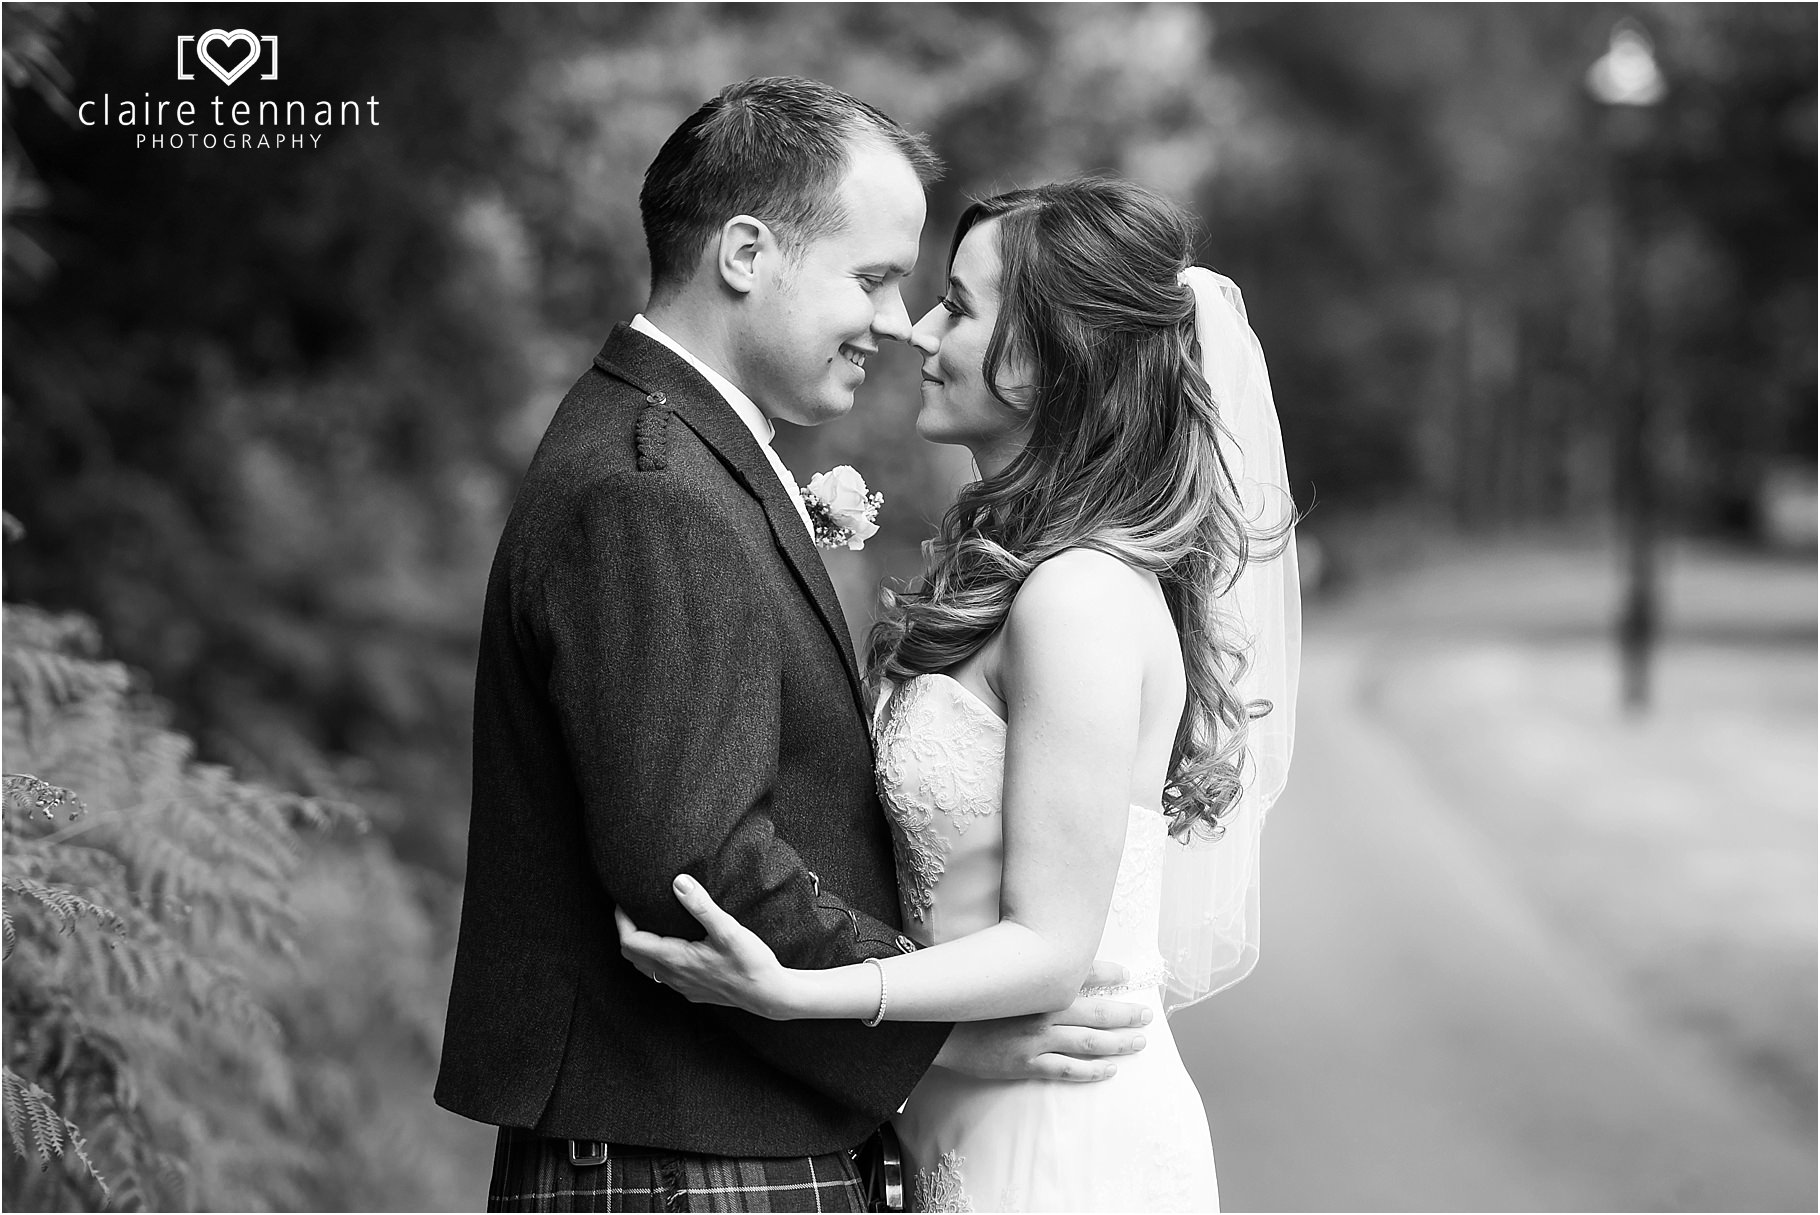 2016 wedding photography highlights Midlothian